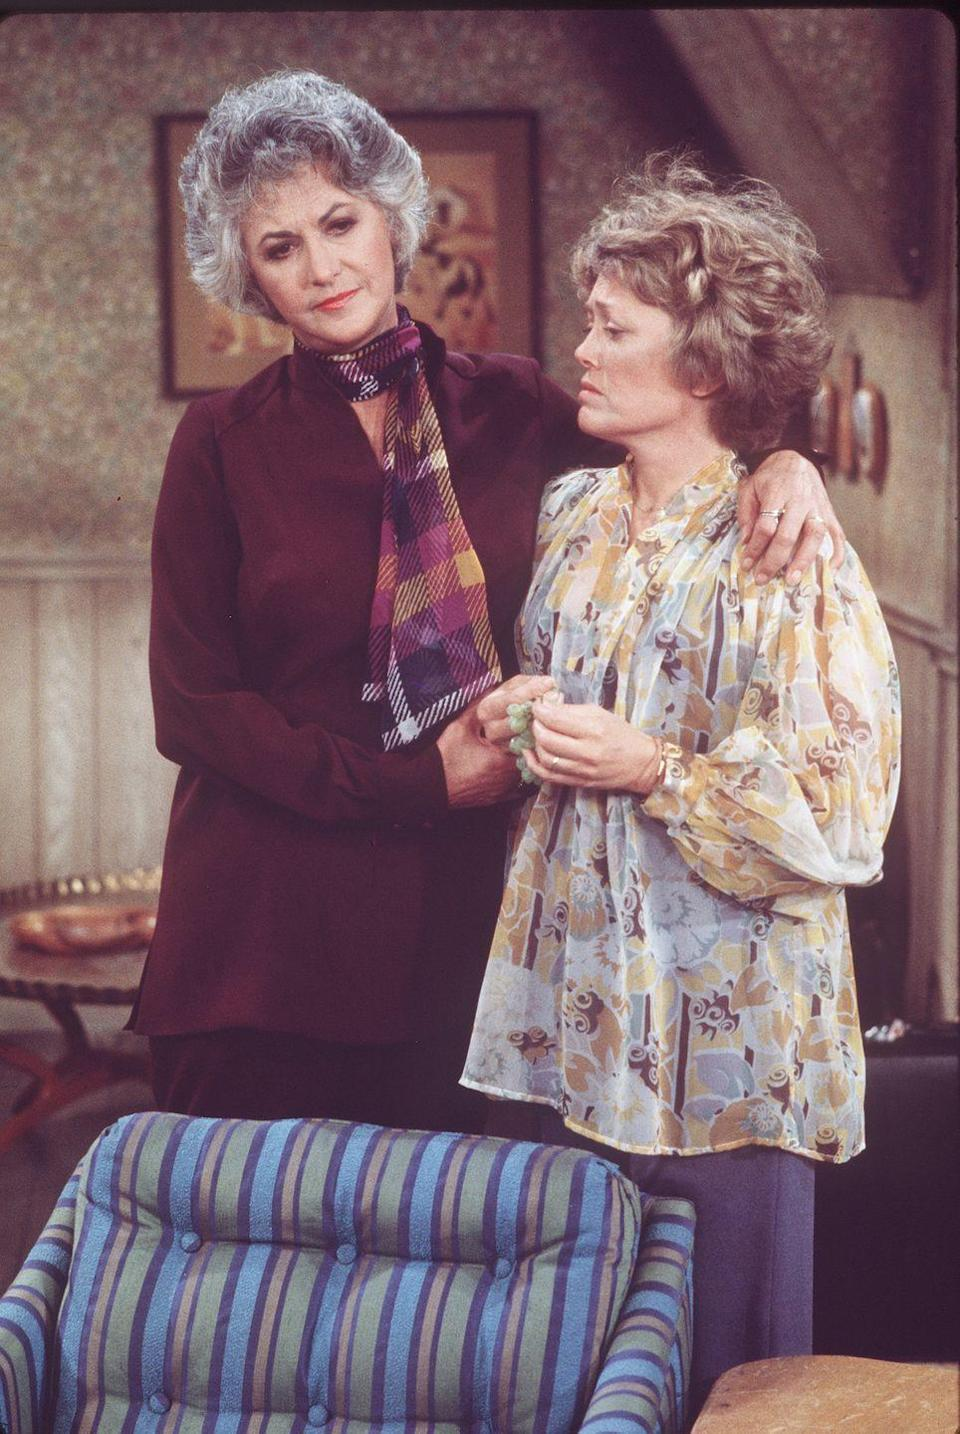 <p>No, this isn't a flashback scene from <em>Golden Girls</em>, this is a pic from the series <em>Maude</em>, that starred Arthur, and featured appearances by McClanahan as her neighbor. </p>